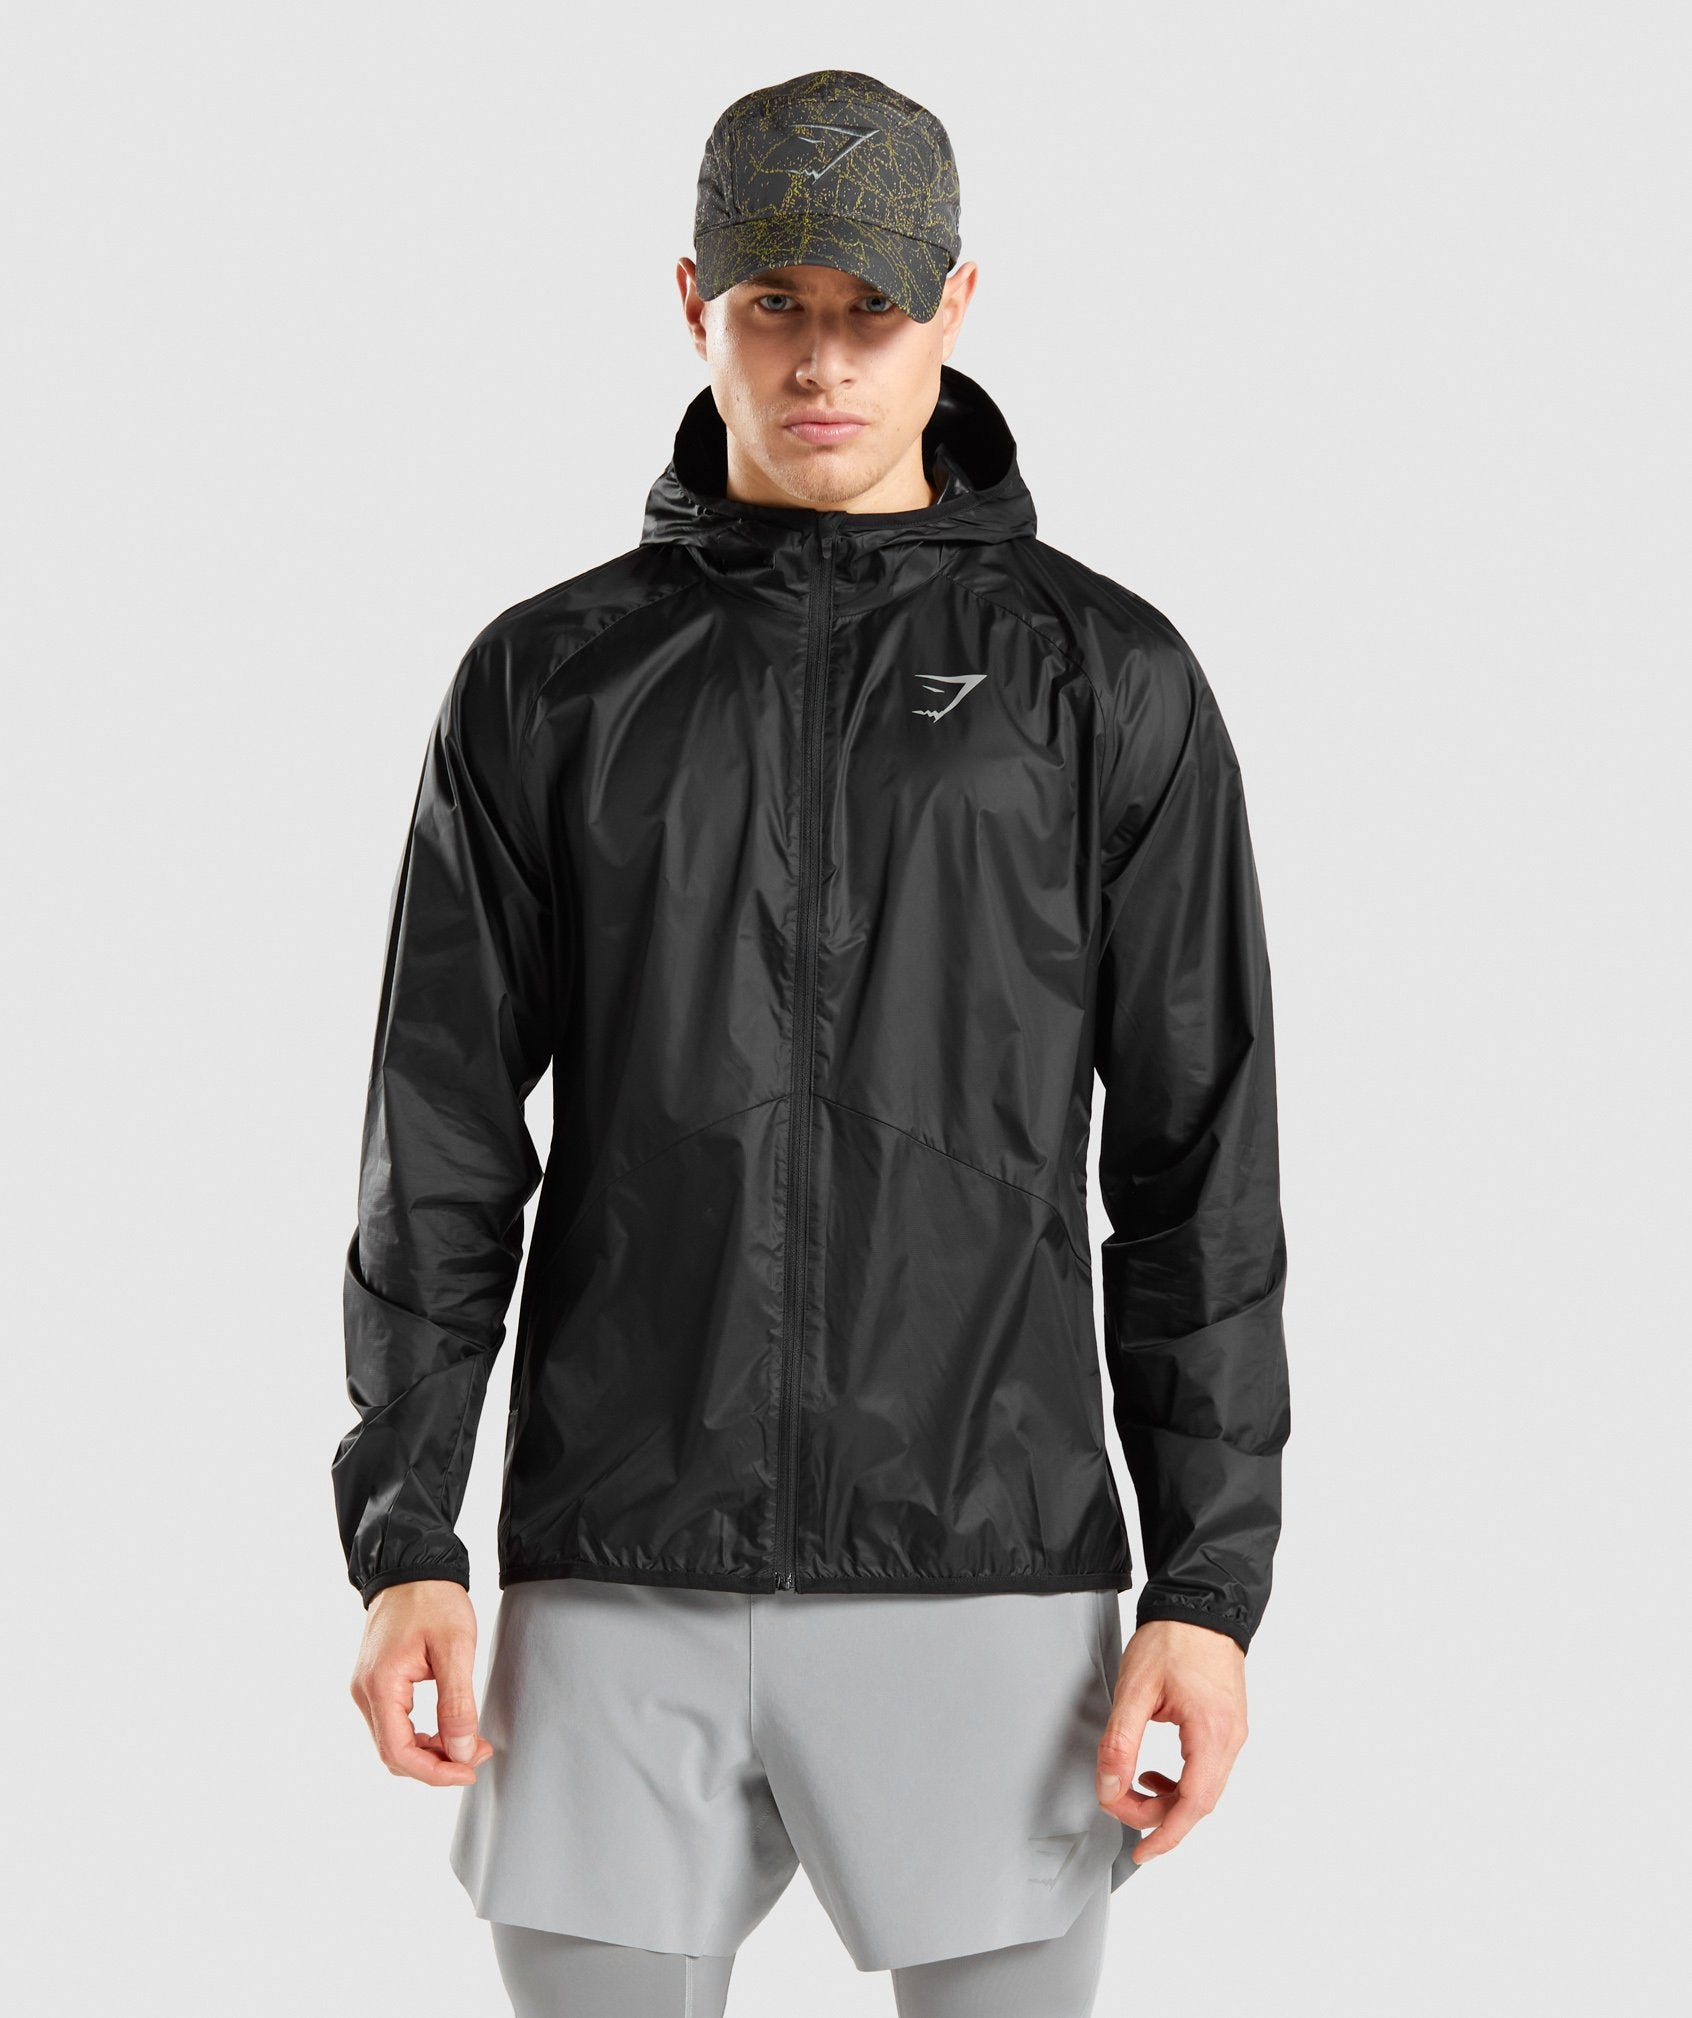 Classier: Buy Gymshark Speed Jacket - Black - Gymshark